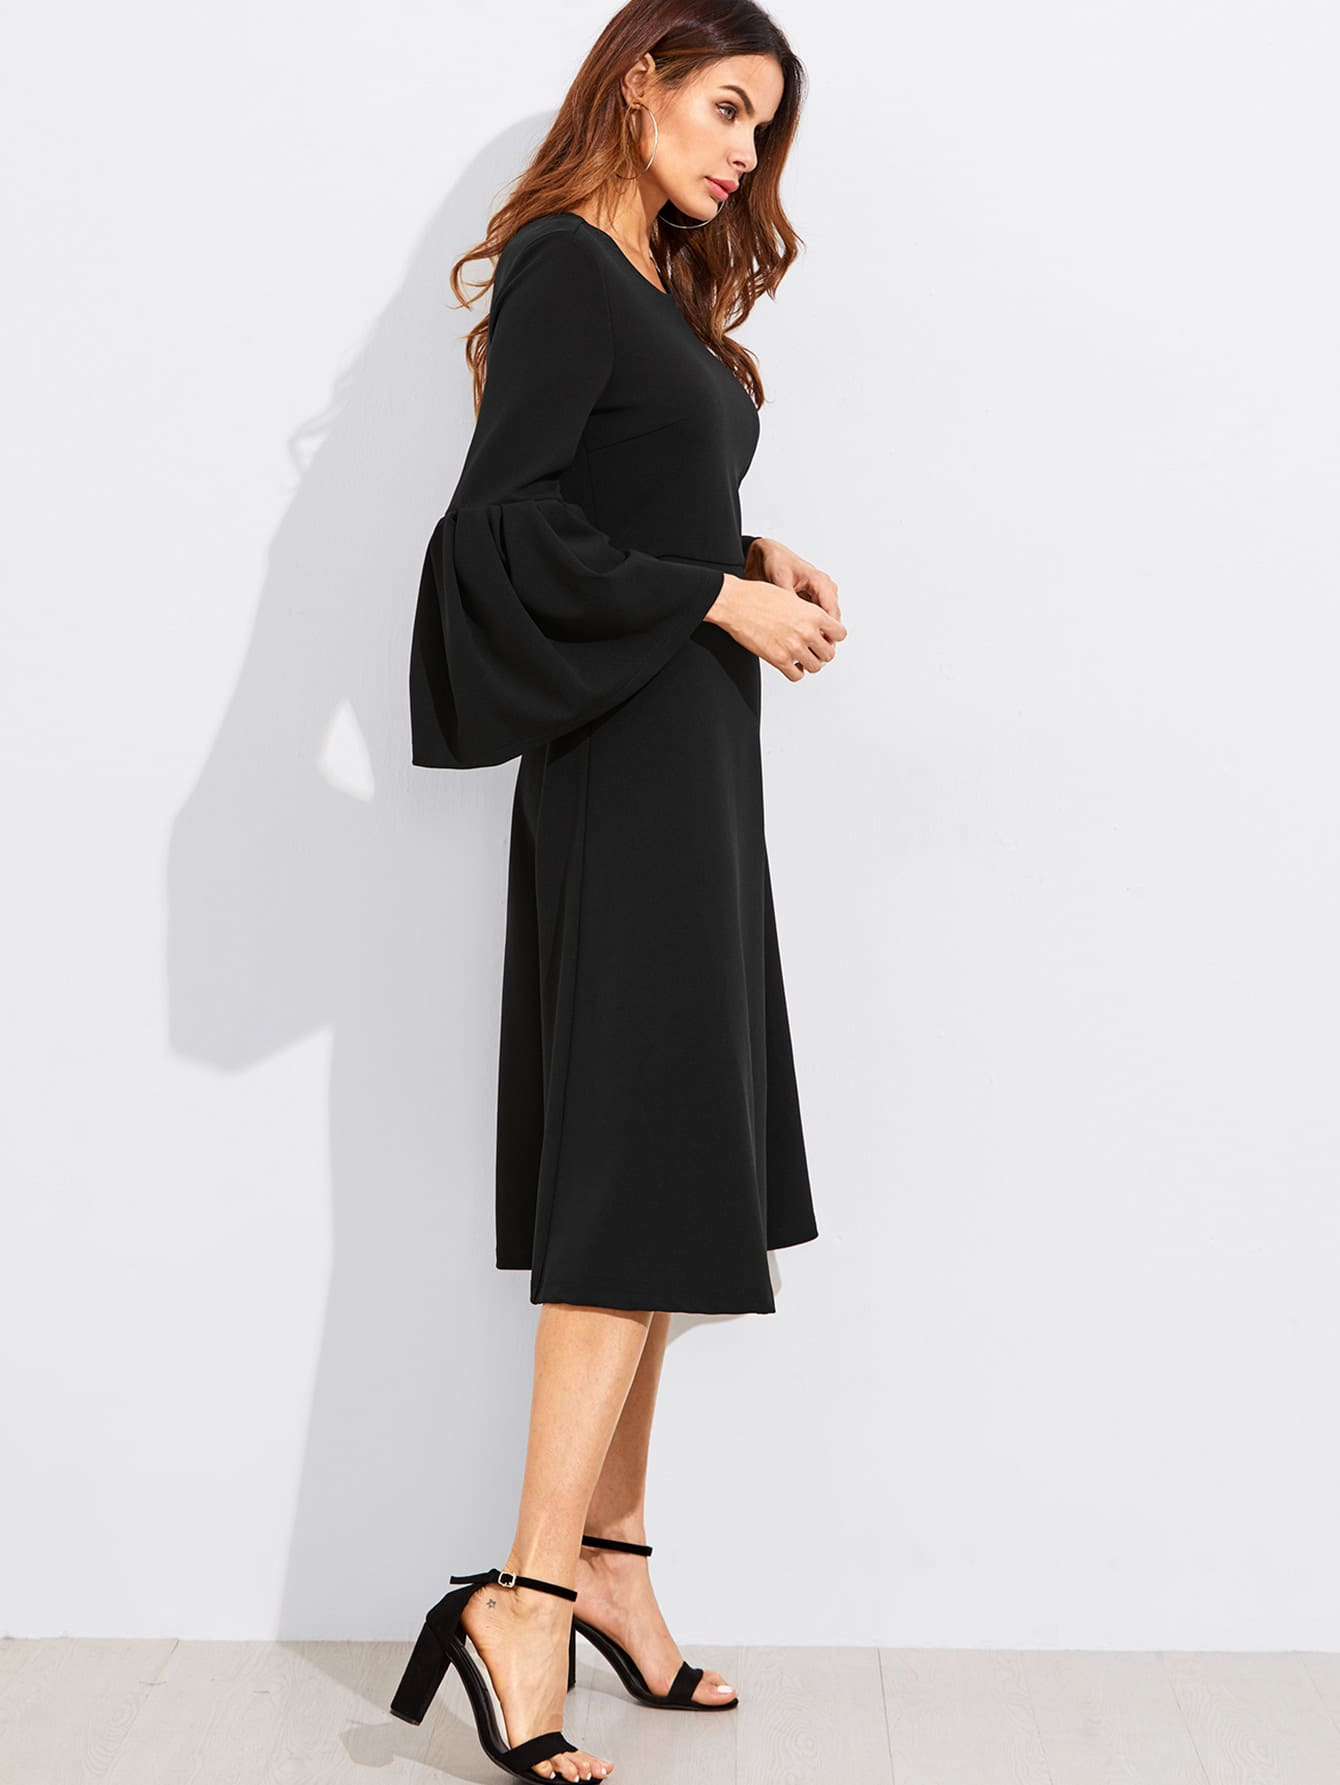 Exaggerate Bell Sleeve Fit & Flare Dress exaggerate bell sleeve buttoned keyhole dress